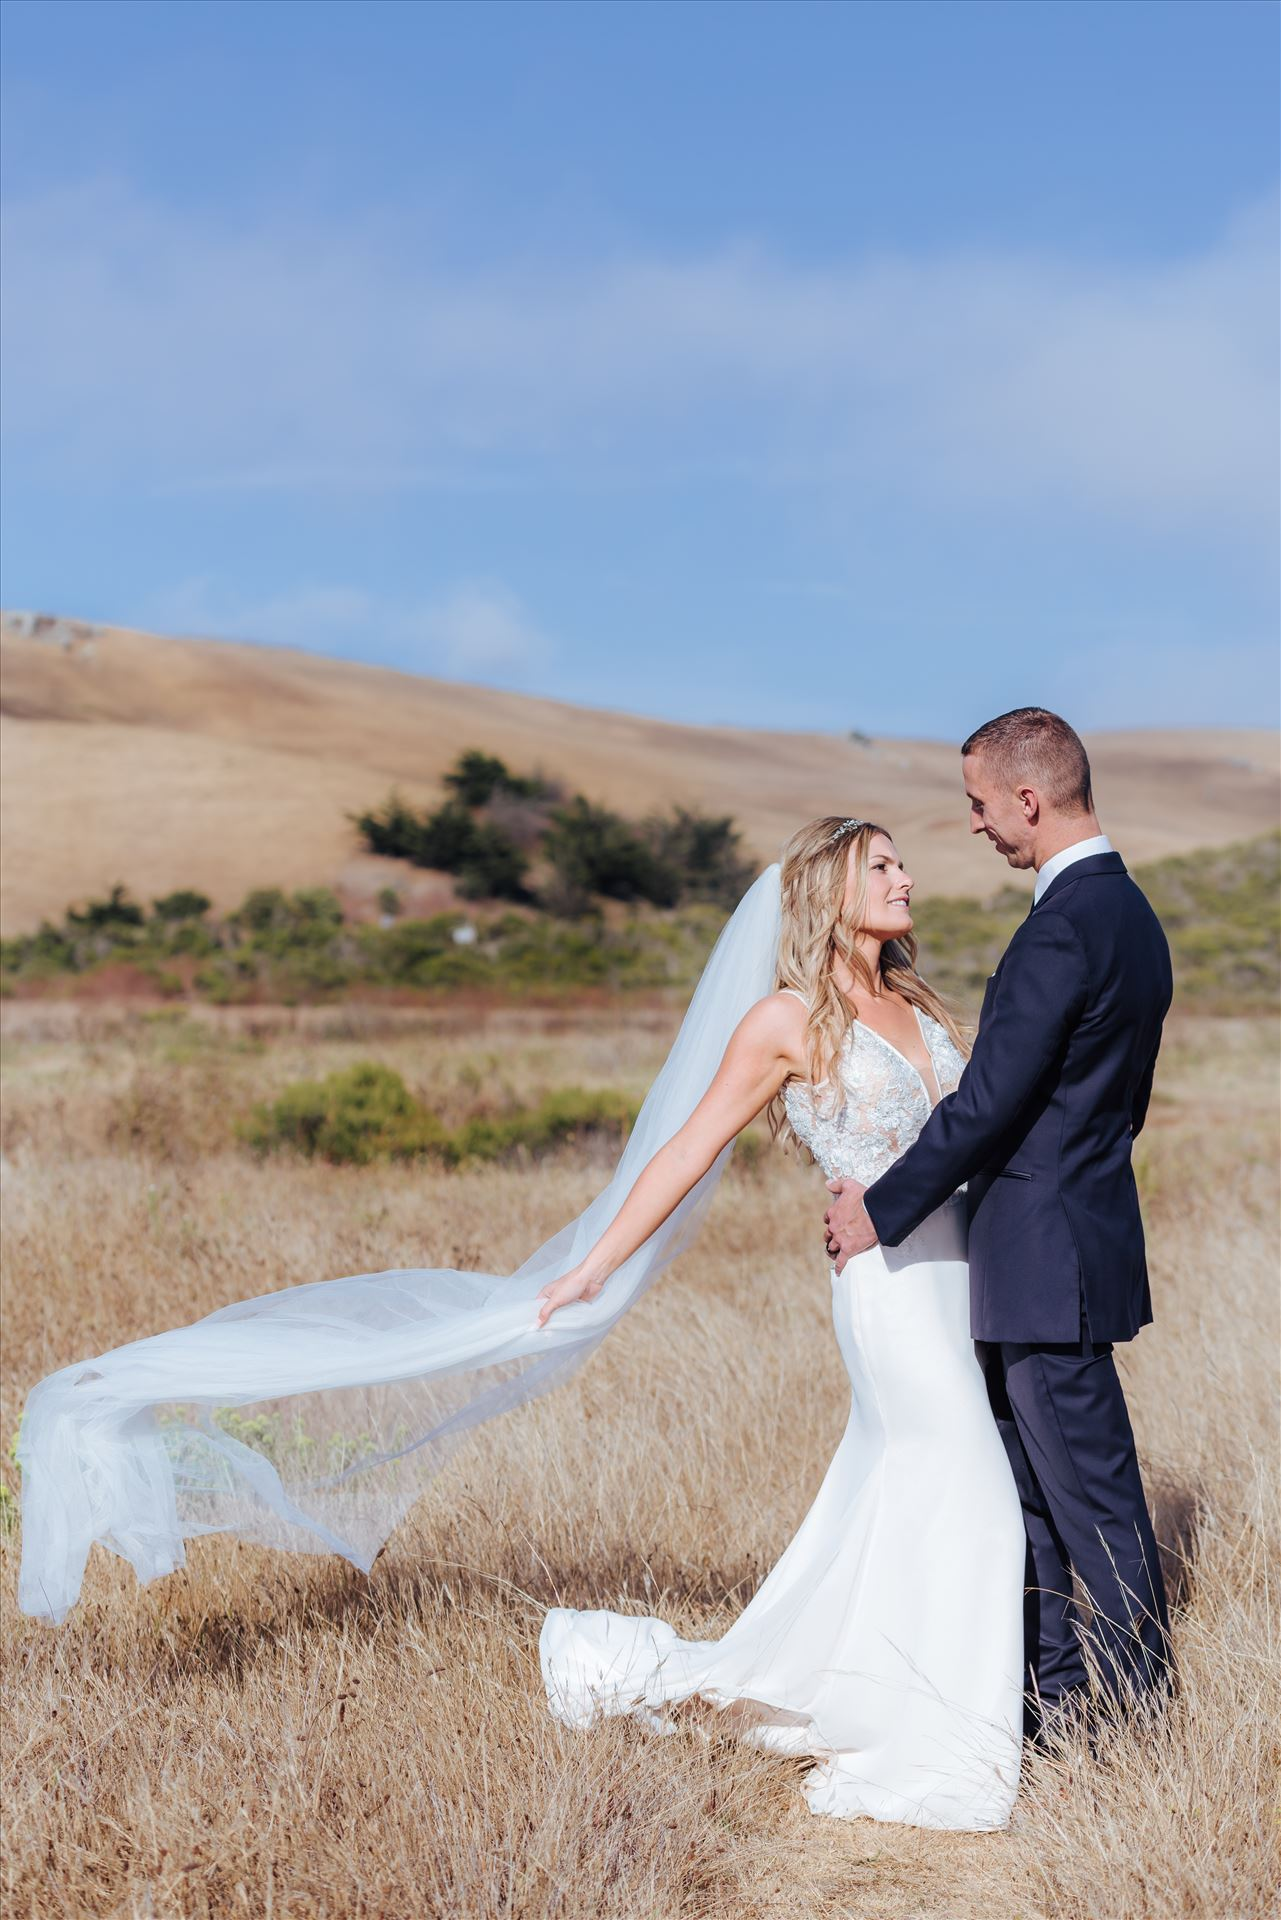 Courtney and Doug 50 Mirror's Edge Photography, San Luis Obispo Wedding Photographer captures Cayucos Wedding on the beach and bluffs in Cayucos Central California Coast. Northern and Central California San Luis Obispo County Bride and Groom by Sarah Williams